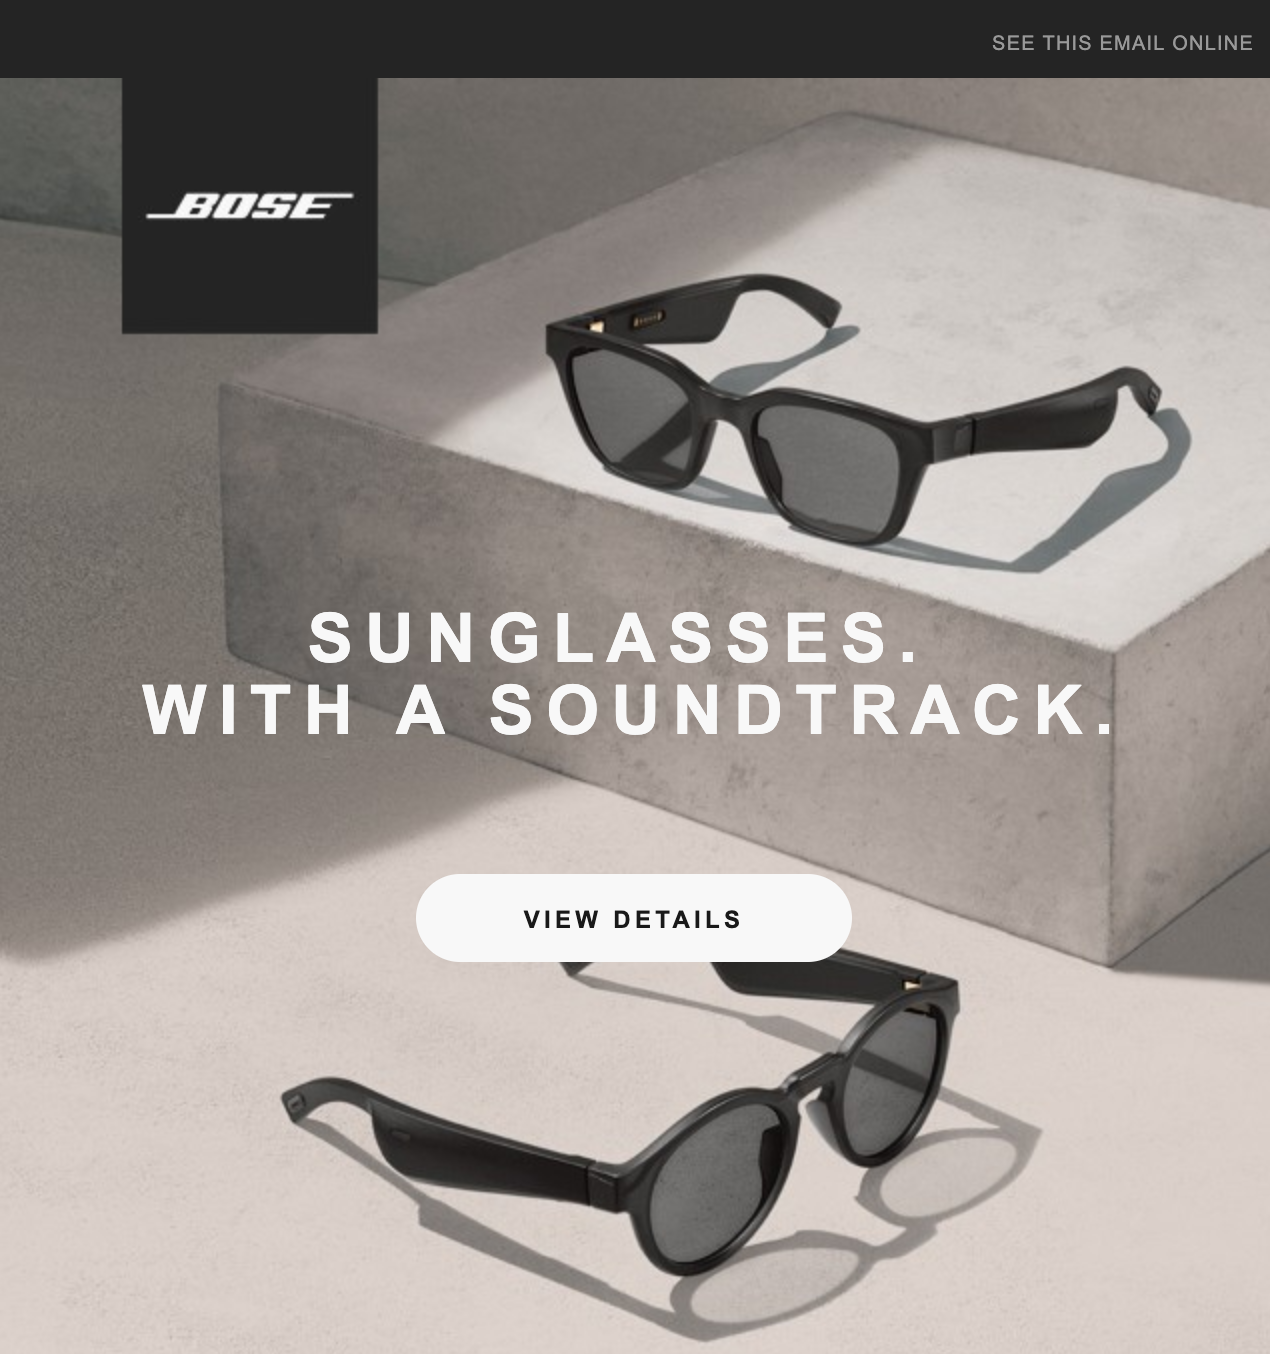 background images - sunglasses